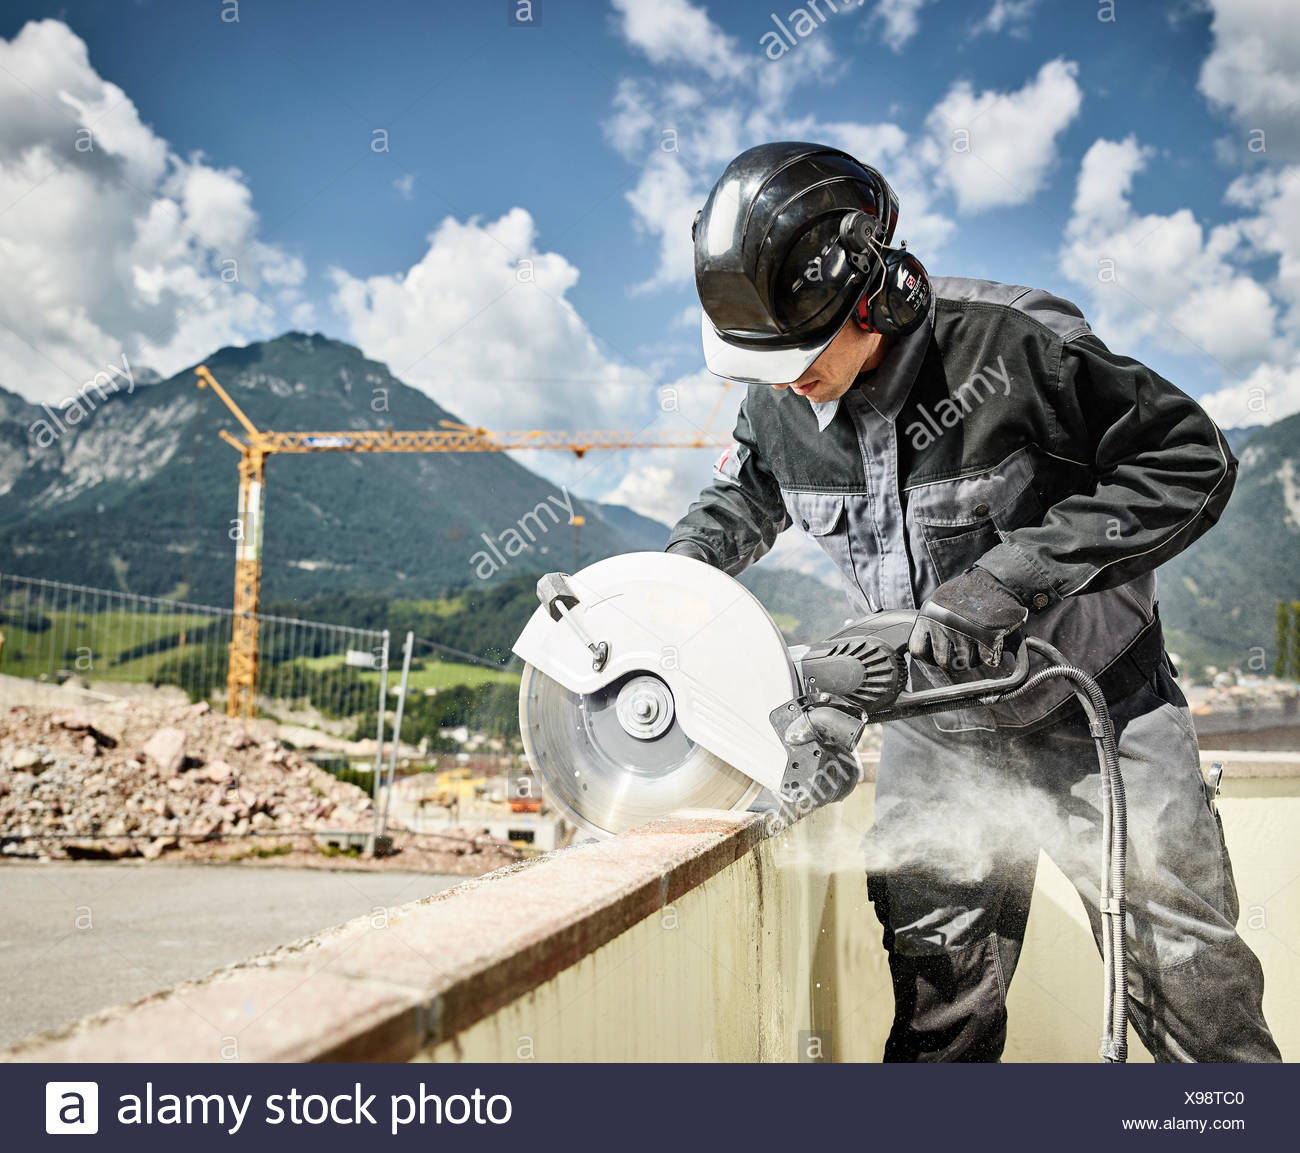 Construction worker with helmet, work clothes and ear protection cutting concrete wall with hand saw, Austria - Stock Image